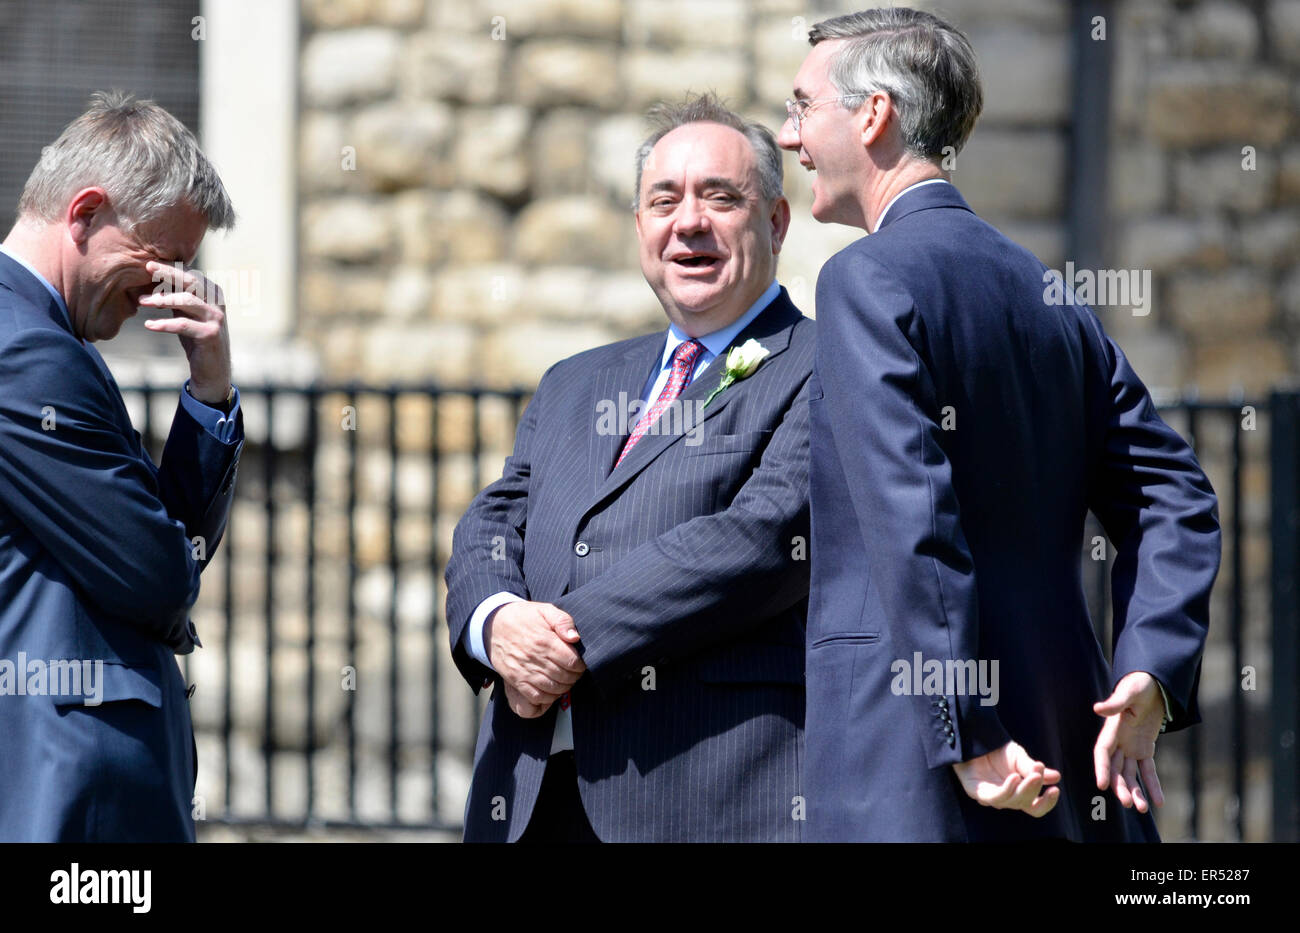 London, UK. 27th May, 2015. State Opening of Parliament. Alex Salmond talking to Jacob Rees-Mogg  on College Green, - Stock Image